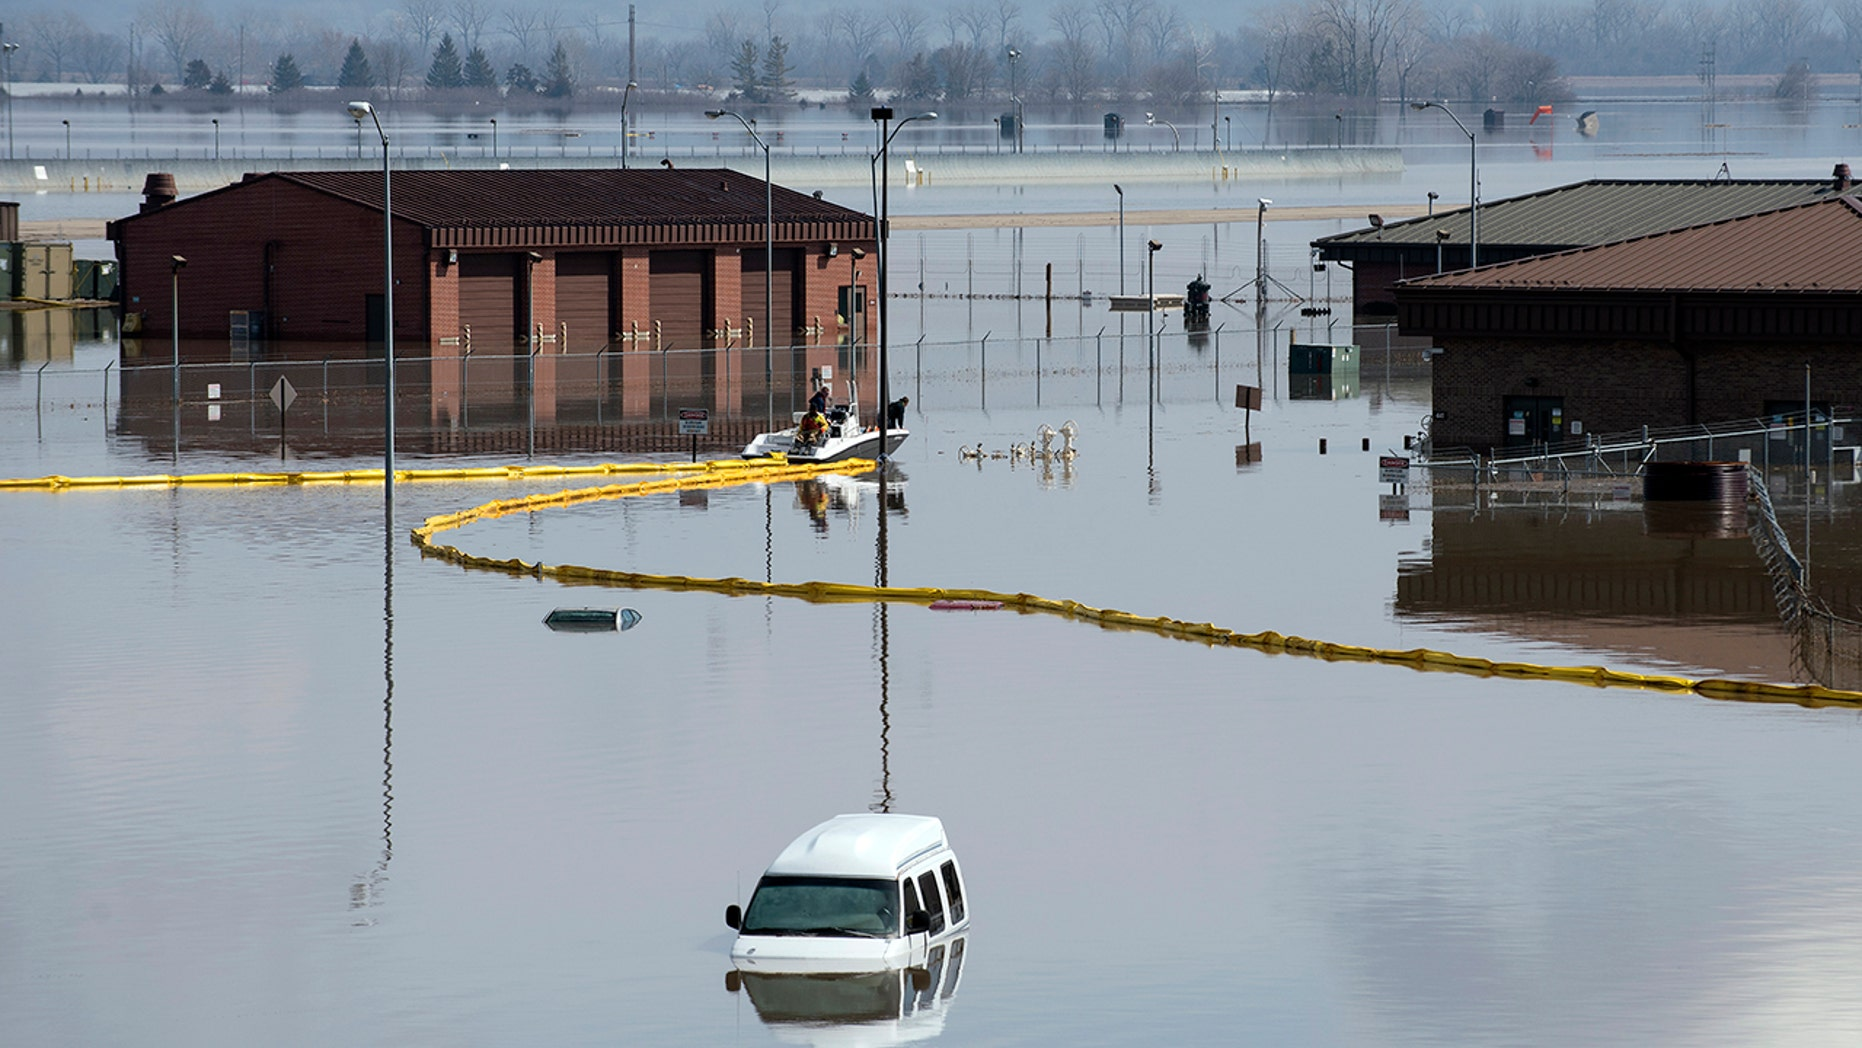 Environmental restoration employees deploy a containment boom from a boat on Offutt Air Force Base in Neb., as a precautionary measure for possible fuel leaks in the flooded area.